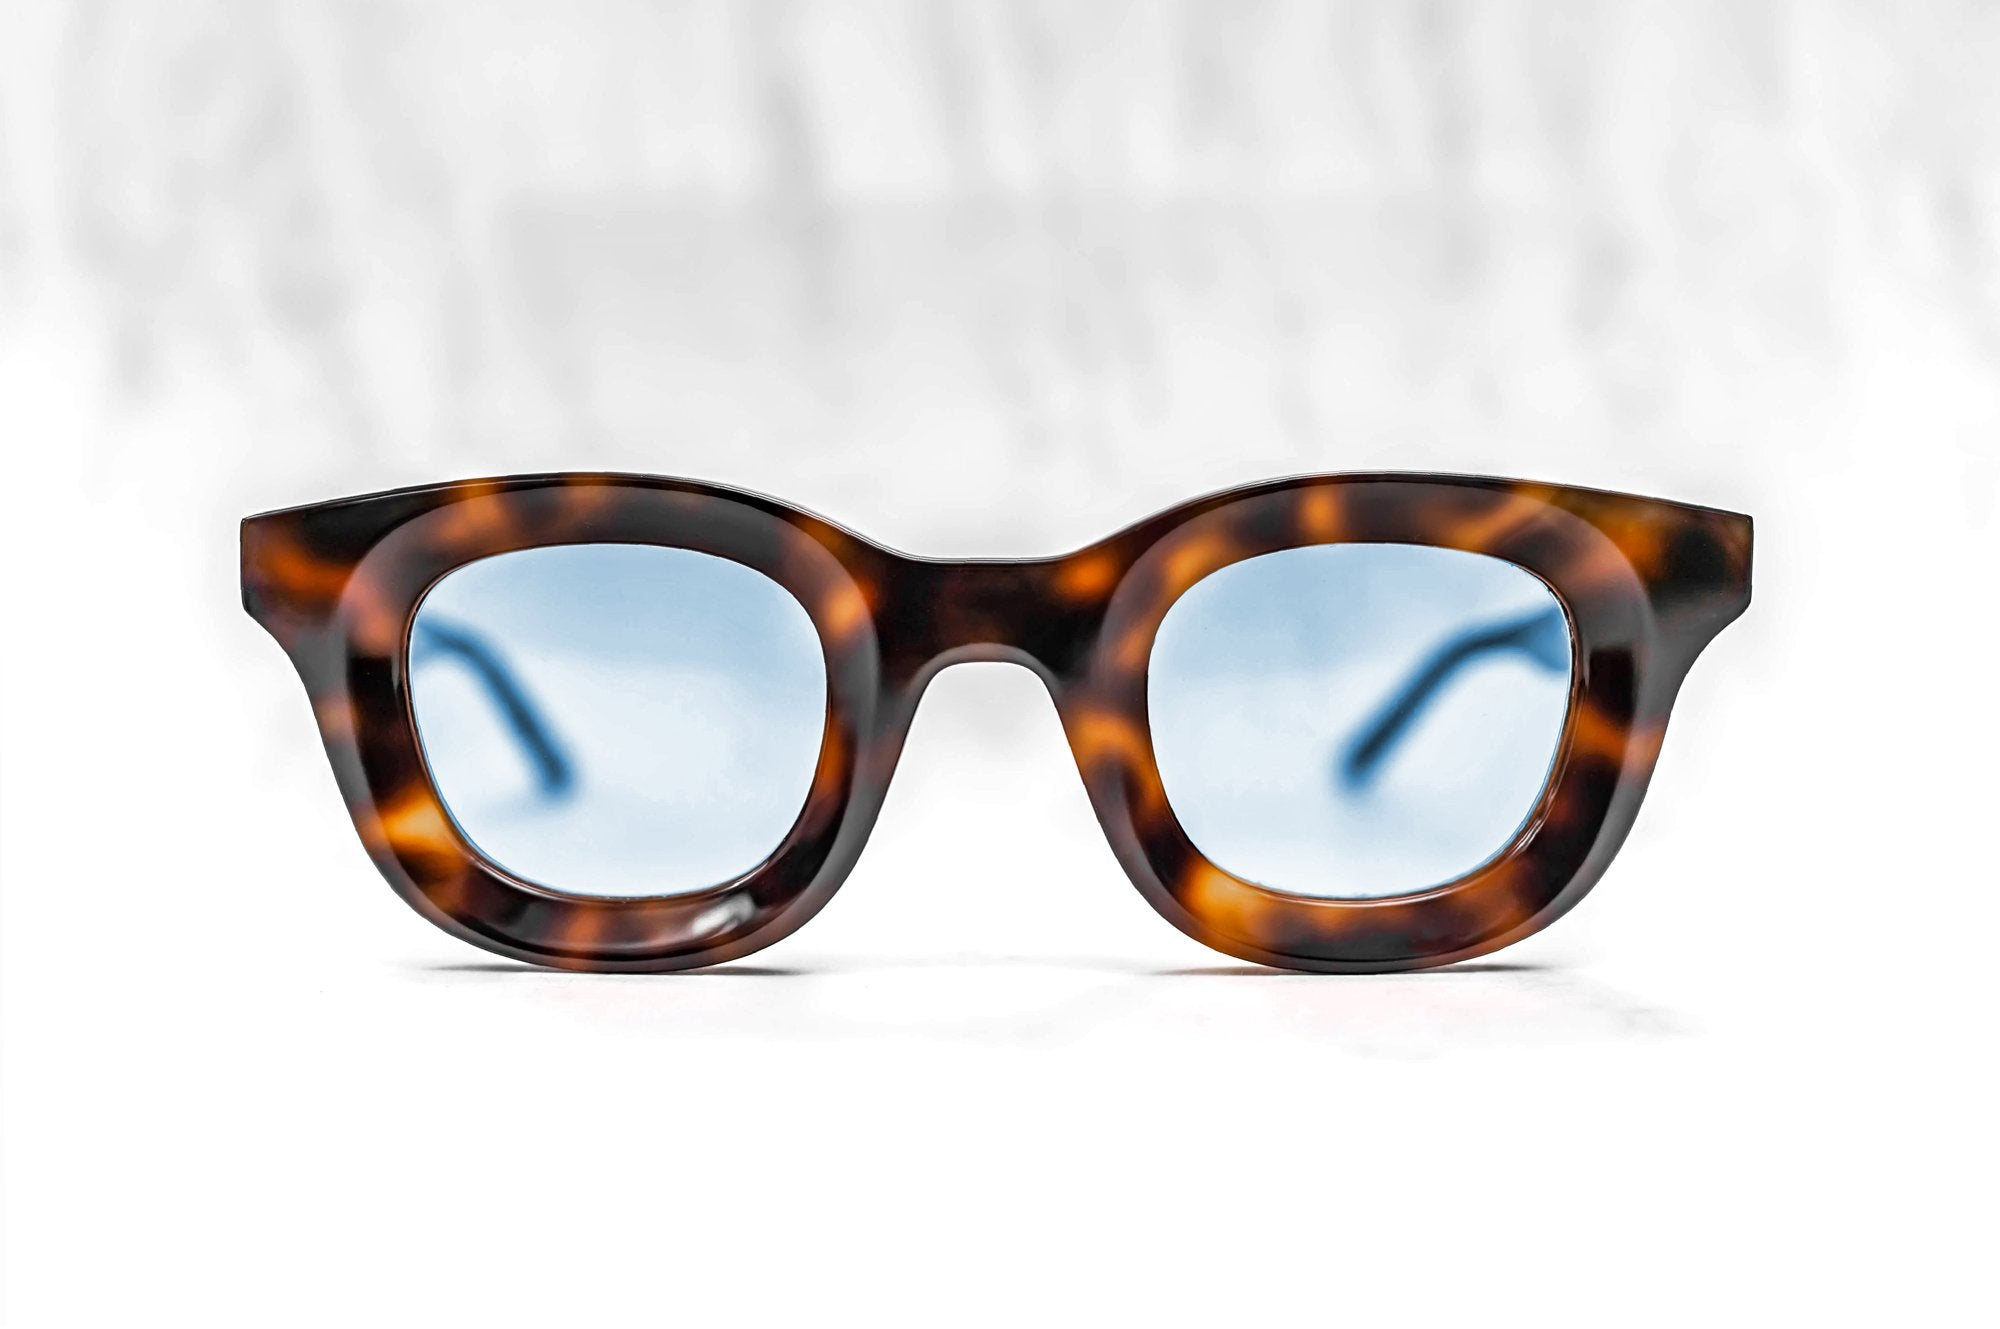 RHUDE x Thierry Lasry - Rhodeo Sunglasses in Tortoise Shell w/ Light Blue Lenses (610)